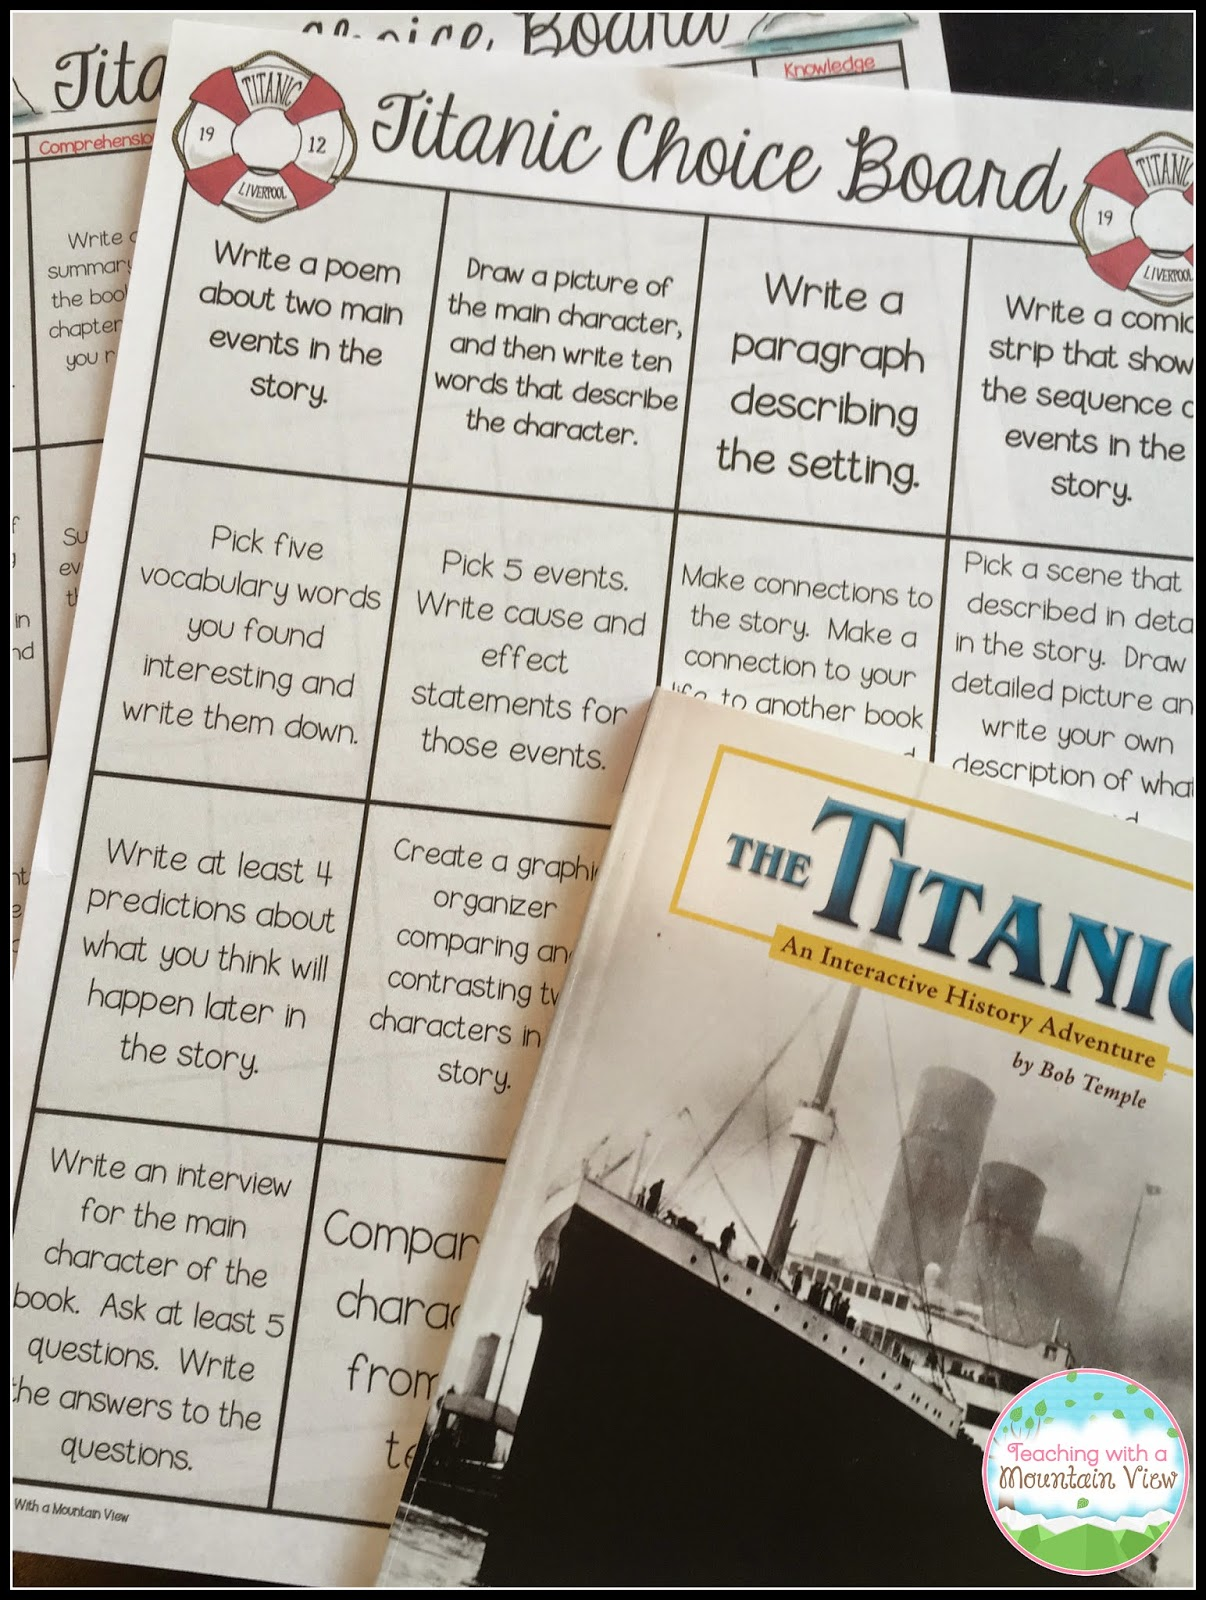 THE TITANIC. WRITING A REPORT AND I NEED A LITTLE HELP!?